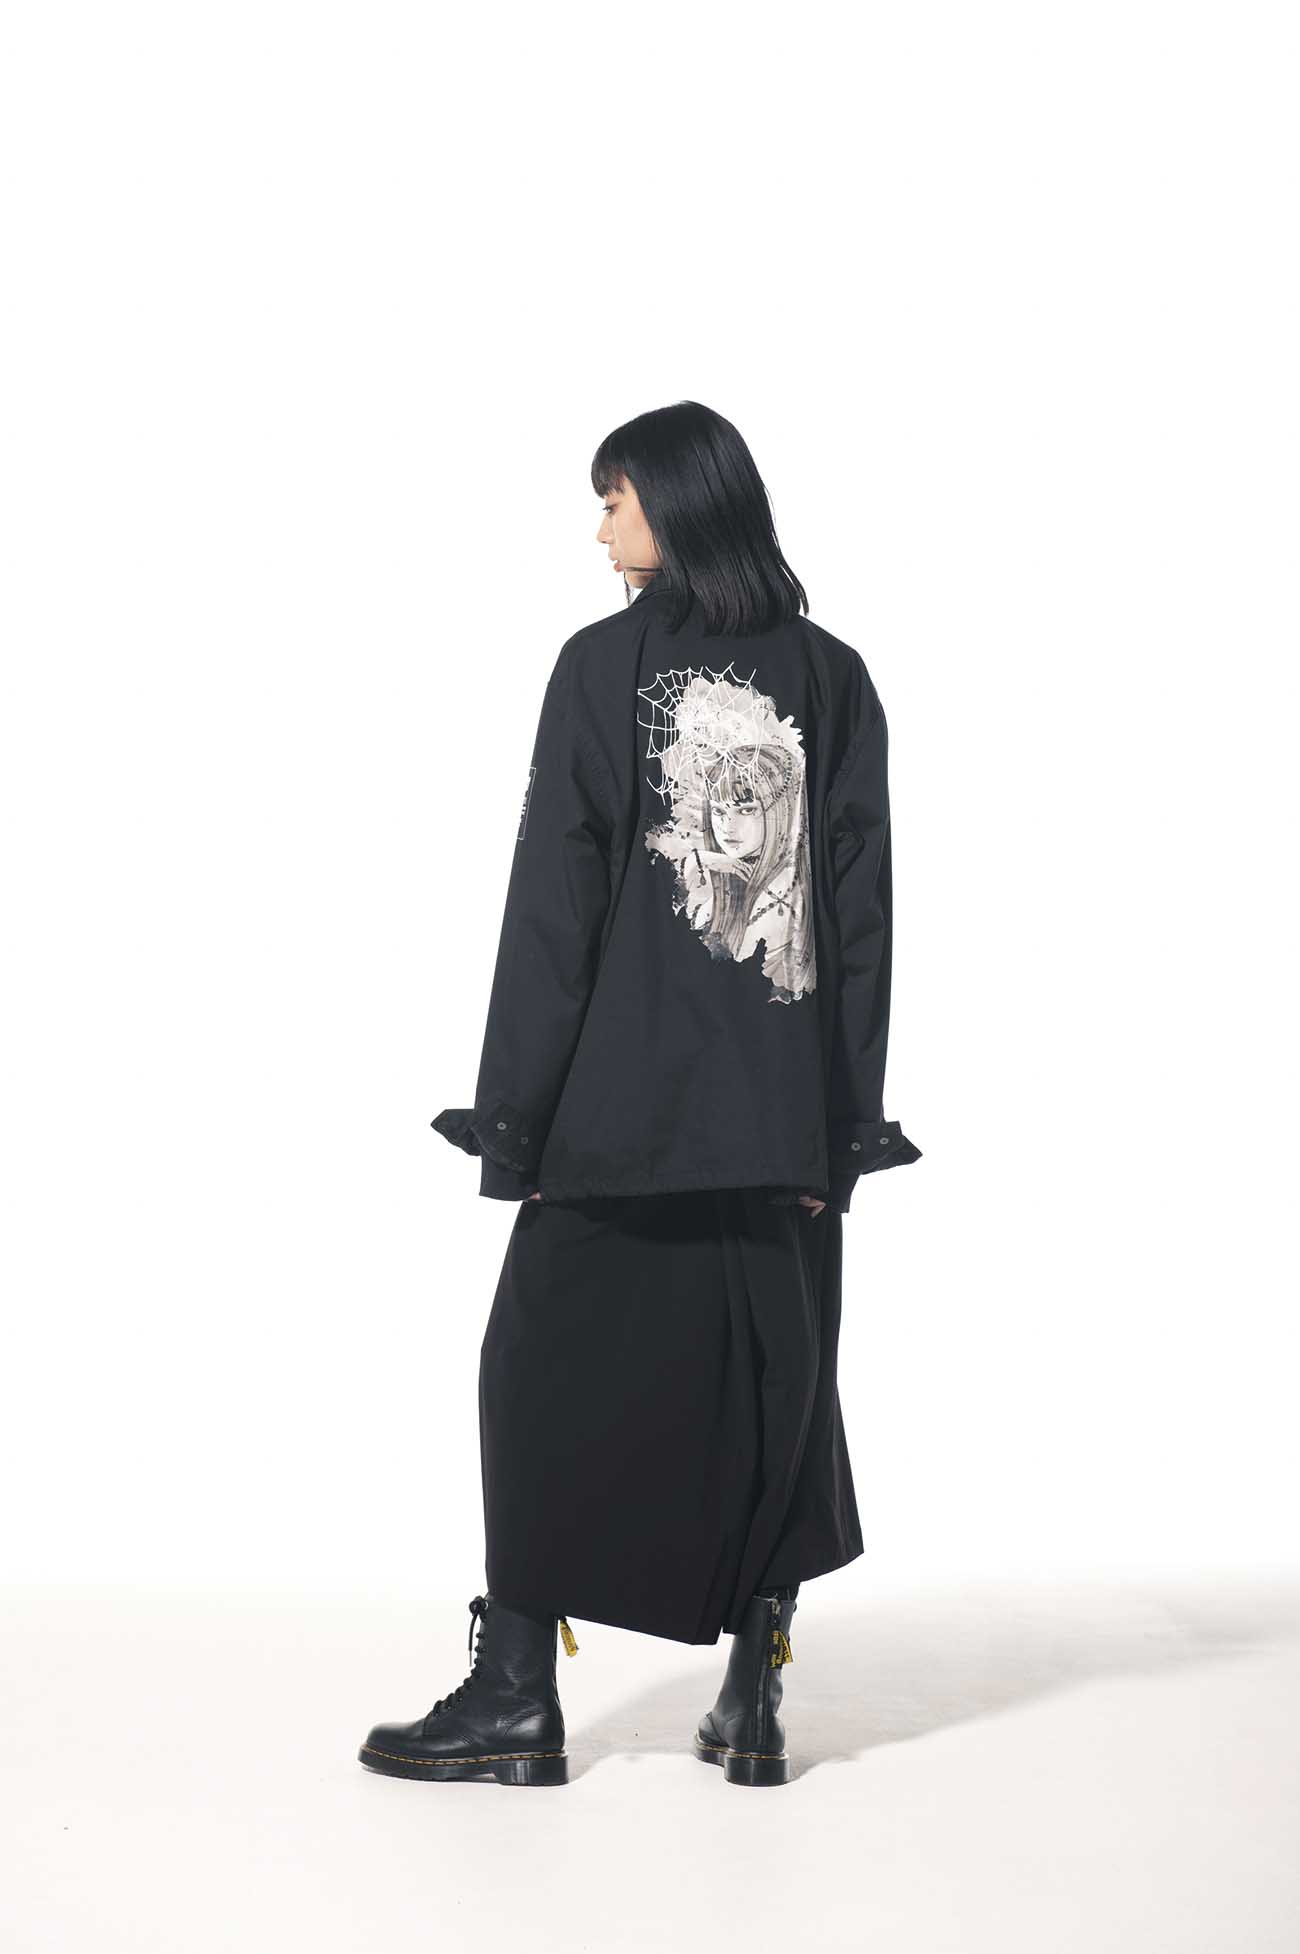 T/C Whether「Tomie」Flowers and Spider Web Coach Jacket